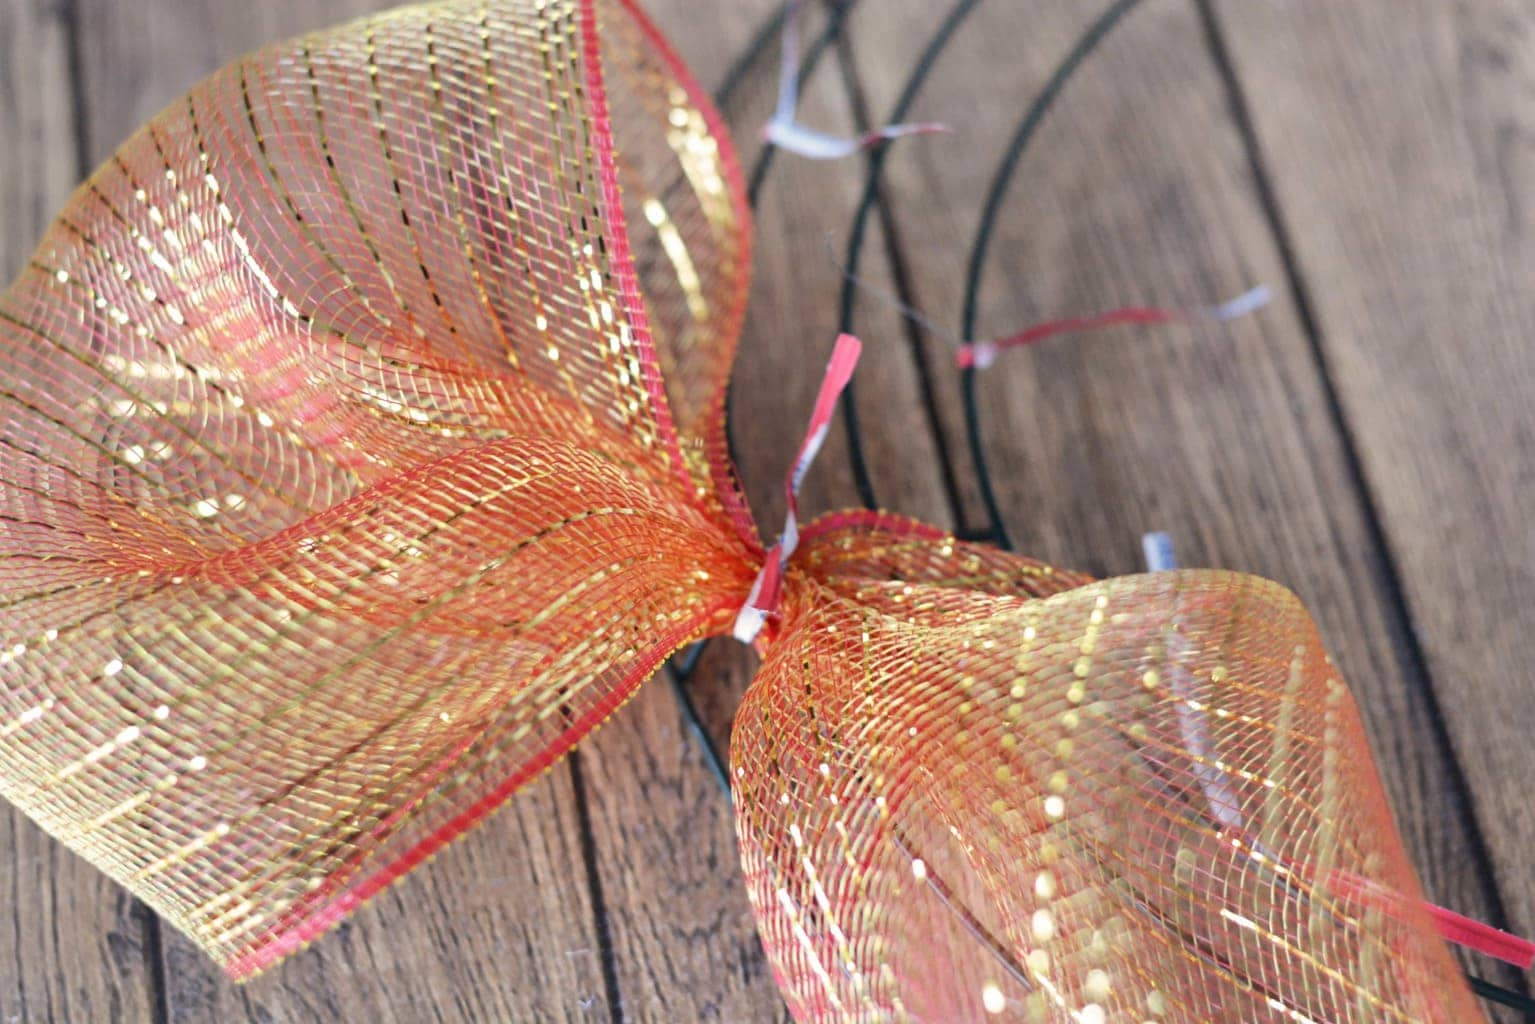 How To Make Deco Mesh Wreaths Step By Step Intructions